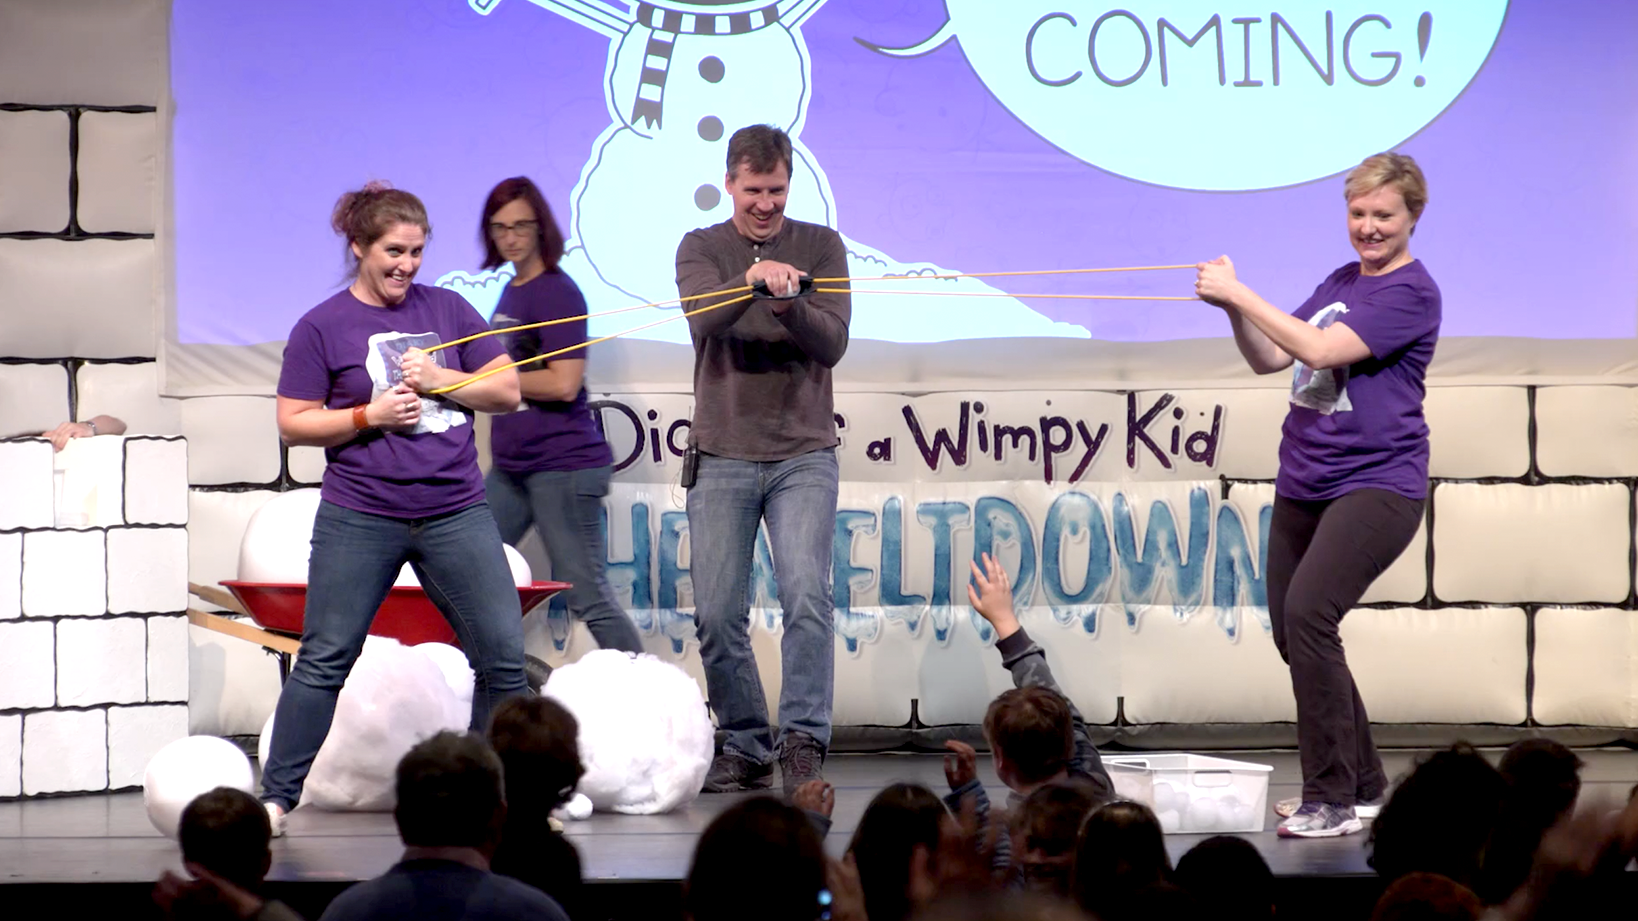 Jeff Kinney on tour for Diary of a Wimpy Kid